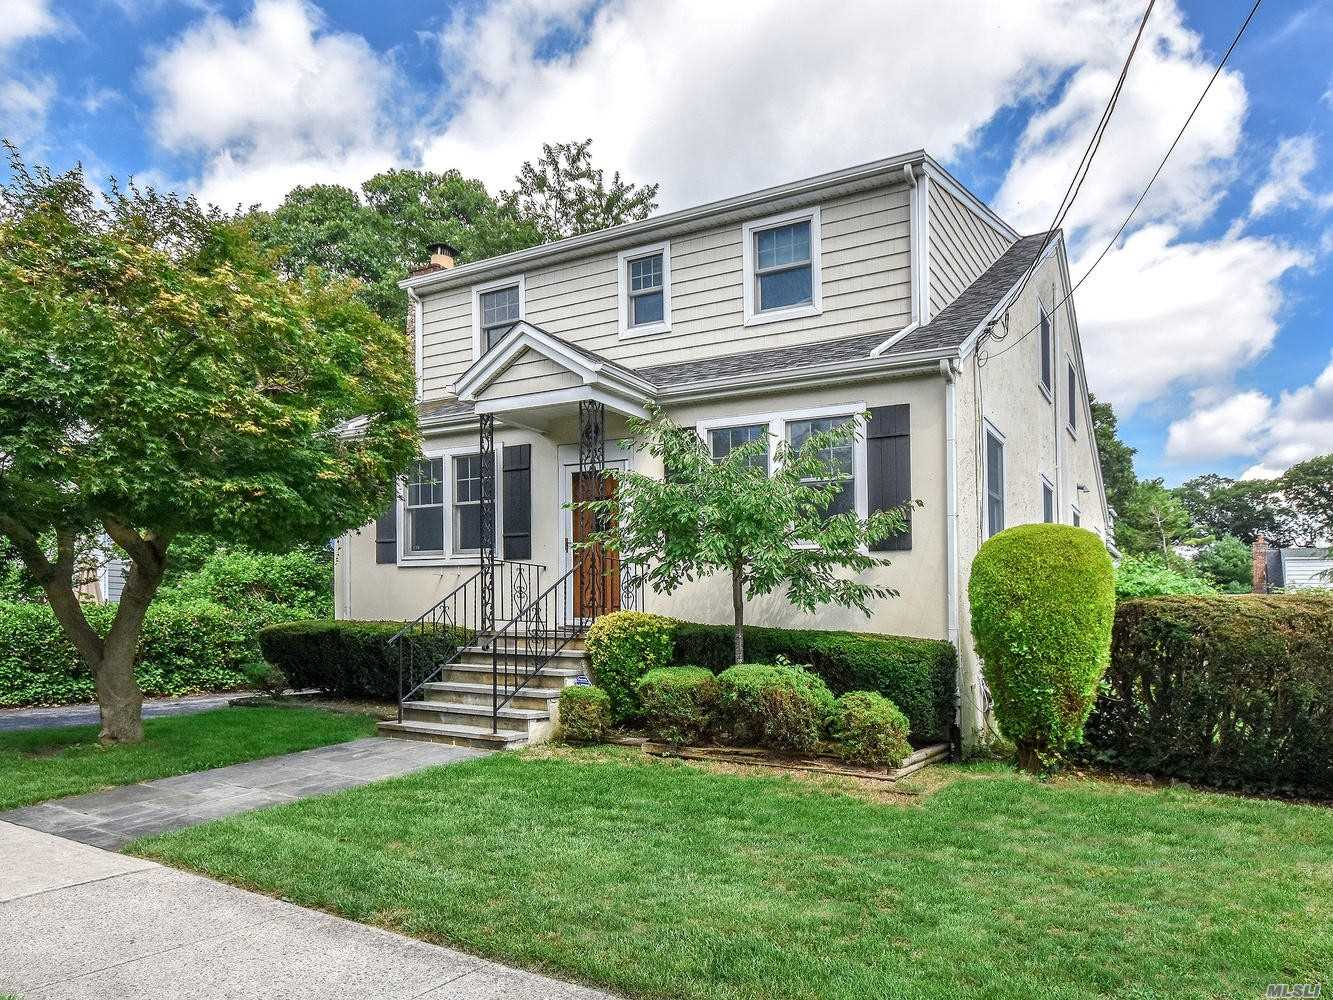 Well Maintained Charming 4/5 Bedroom Colonial On Quiet Street Yet Very Accessible To All. Home Offers Large Rooms With High Ceilings And Hardwood Floors On First Floor. Master Can Be On Main Floor Or Second Floor. Den Off Kitchen W/Laundry Room. Upstairs Has 3/4 Bedrooms And Bath.